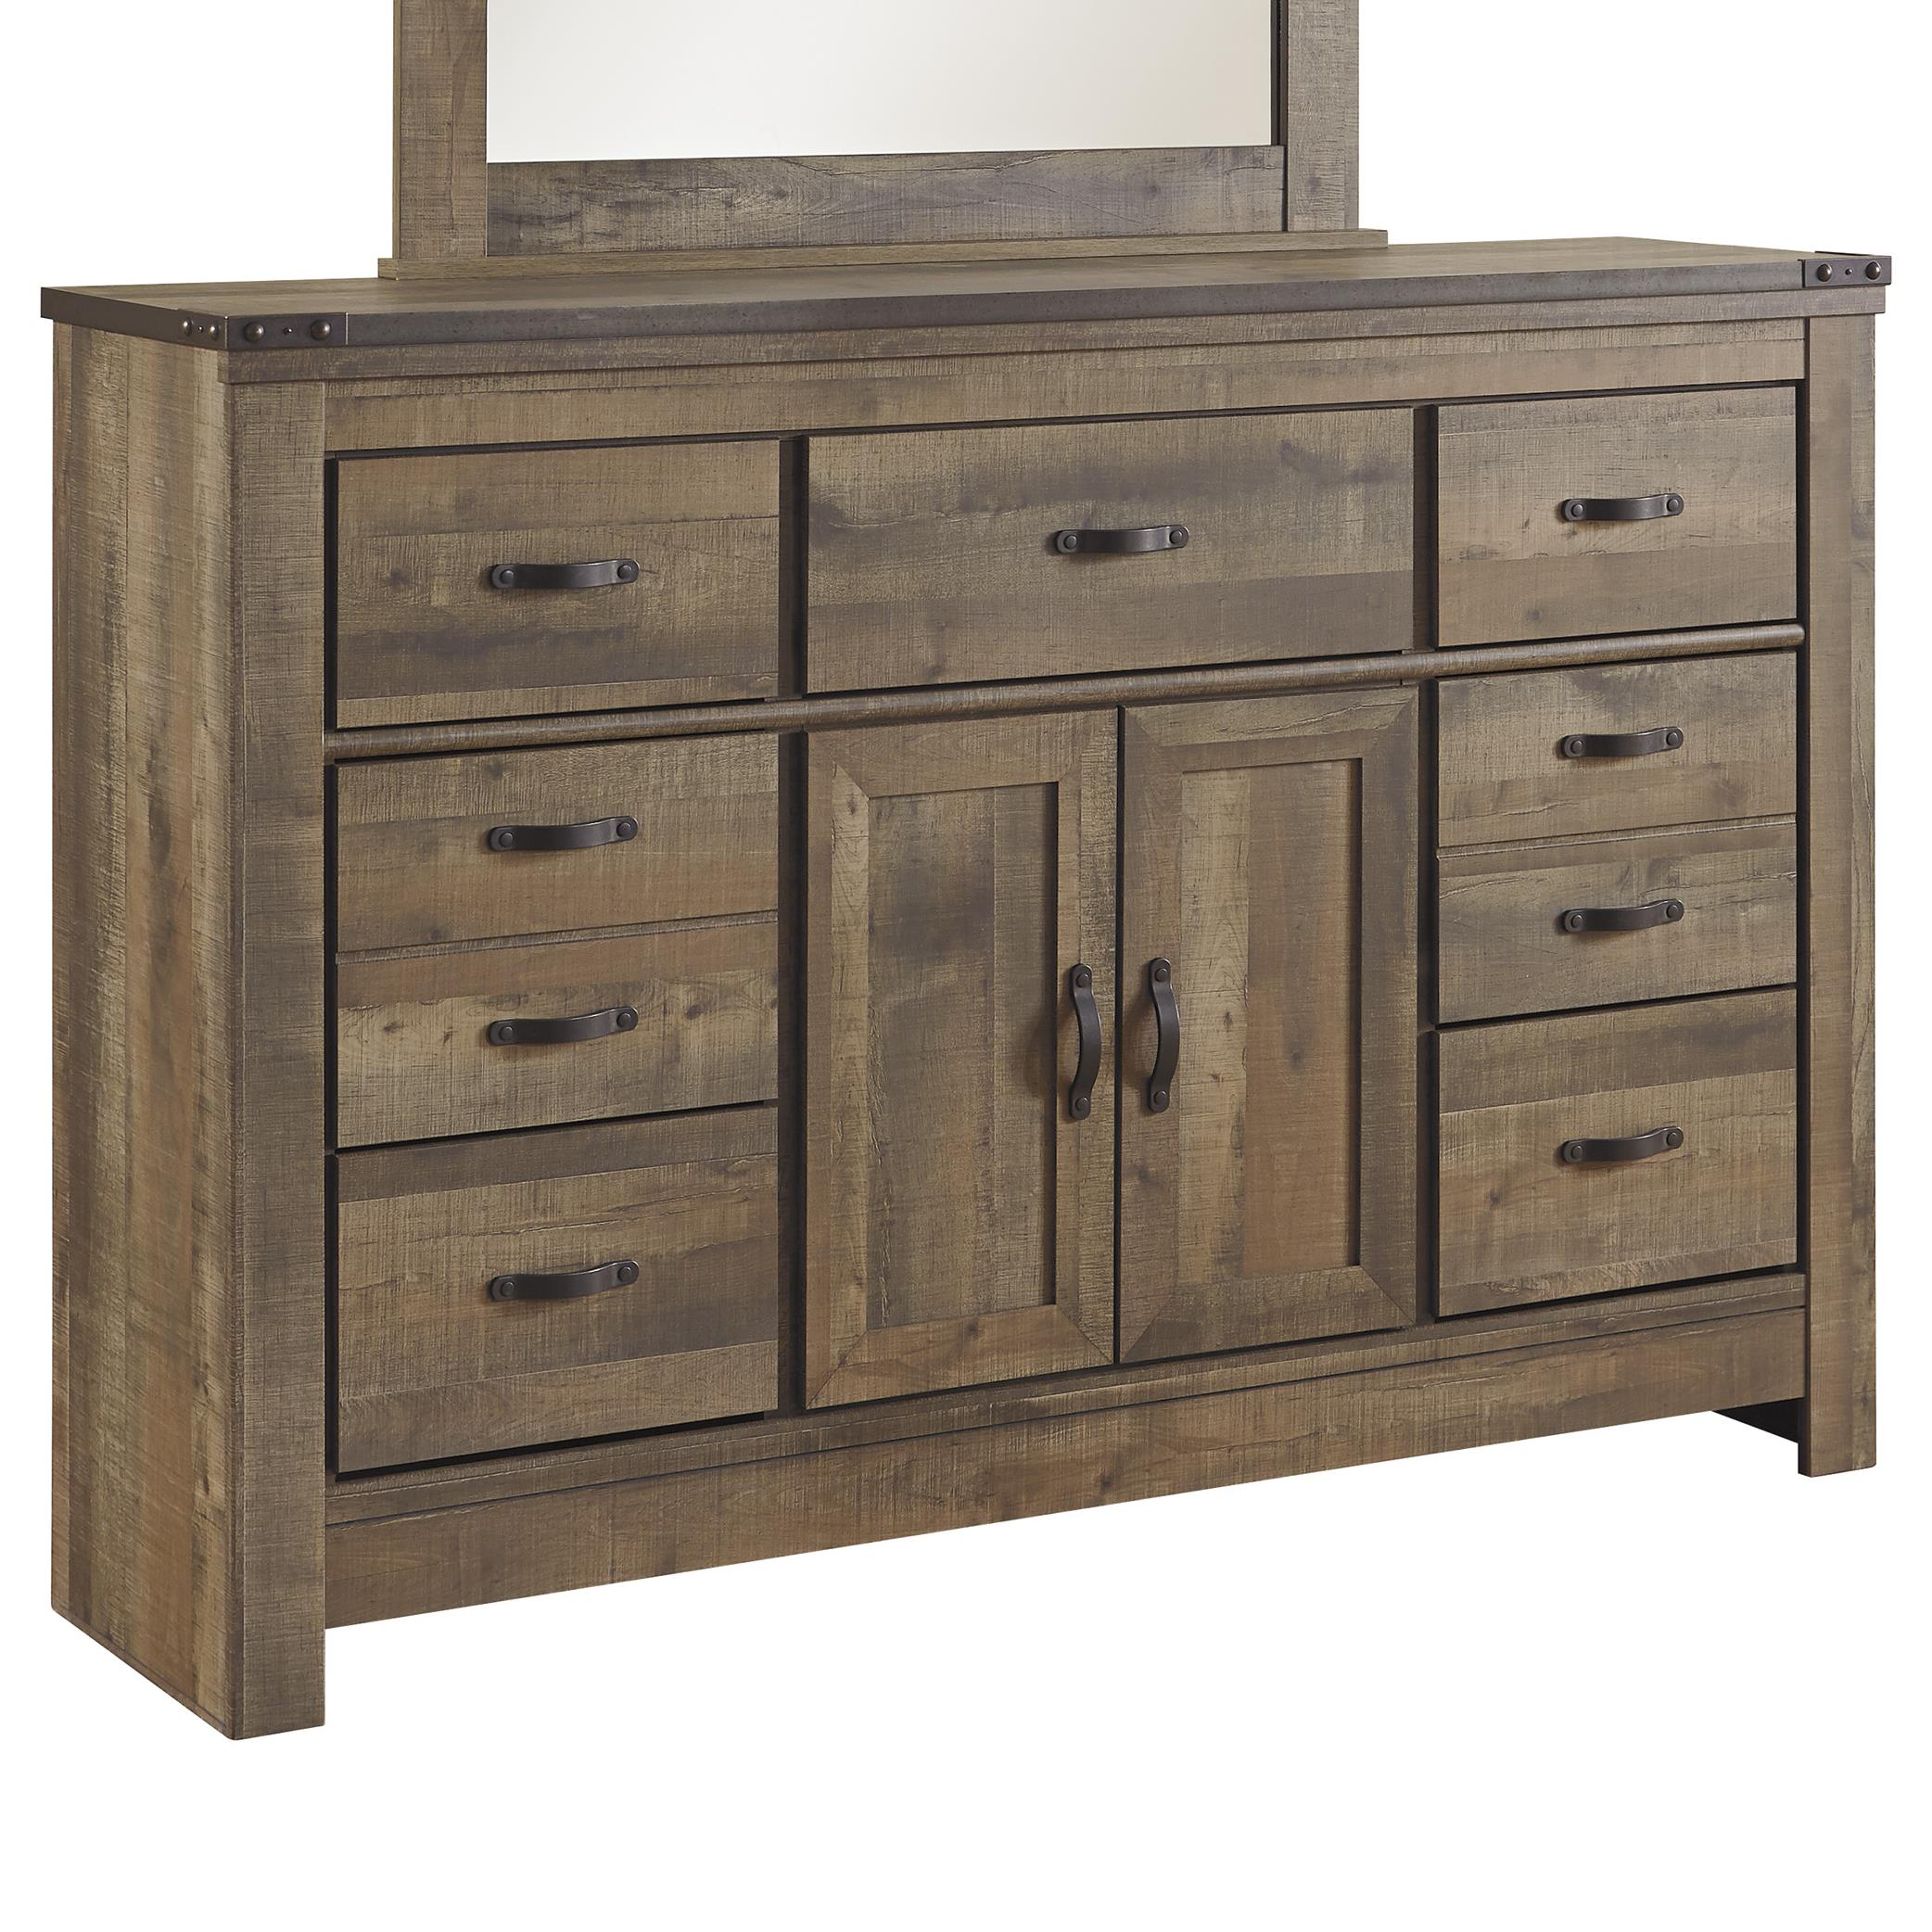 dresser twelve side gallerie second drawer z hand off with doors glass